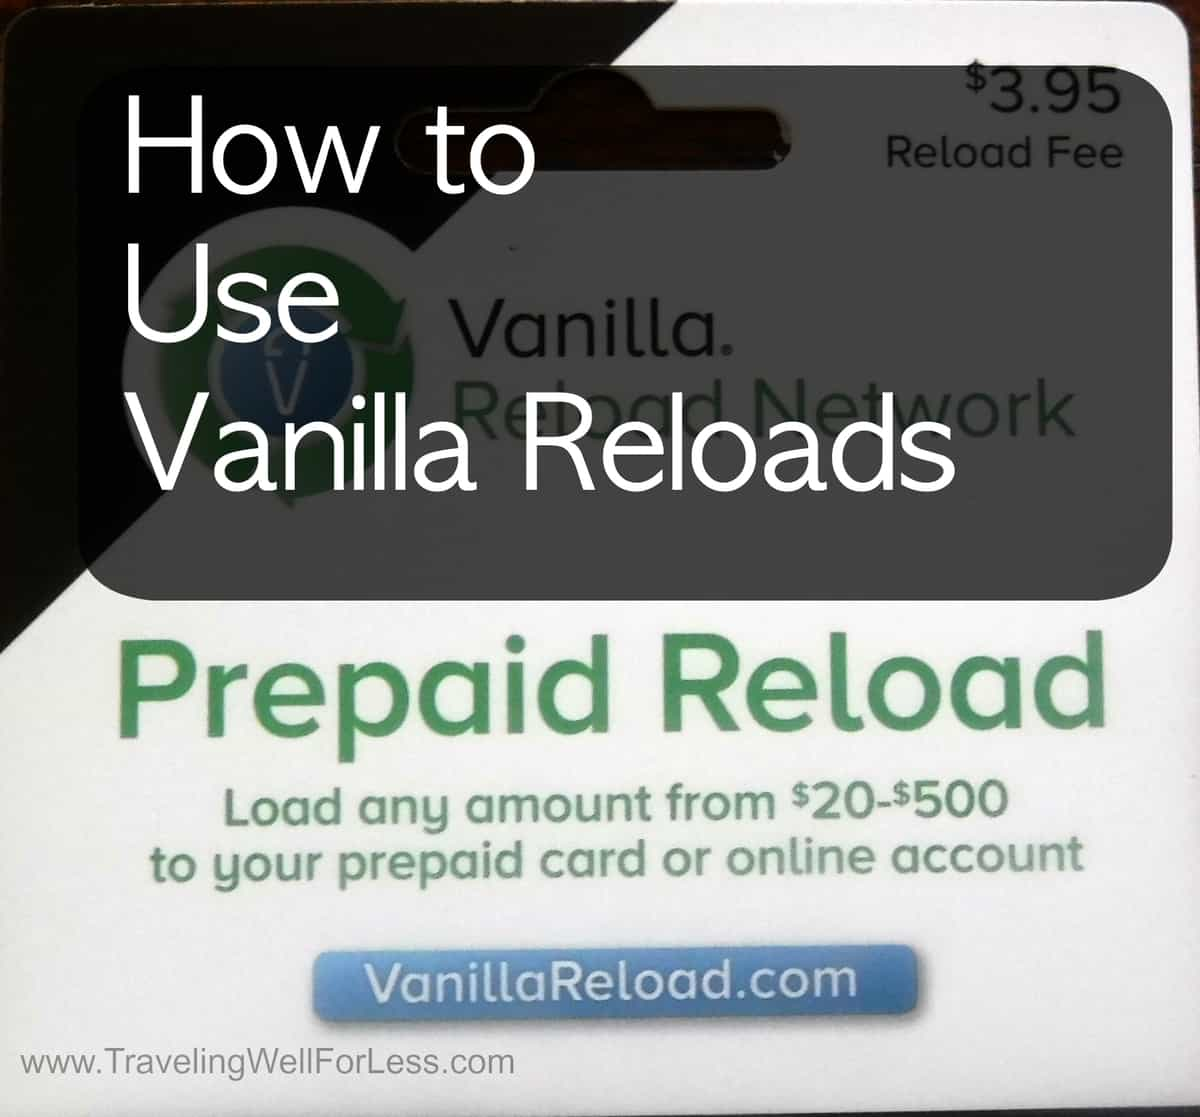 use_vanilla_reloads - Load Prepaid Card Online